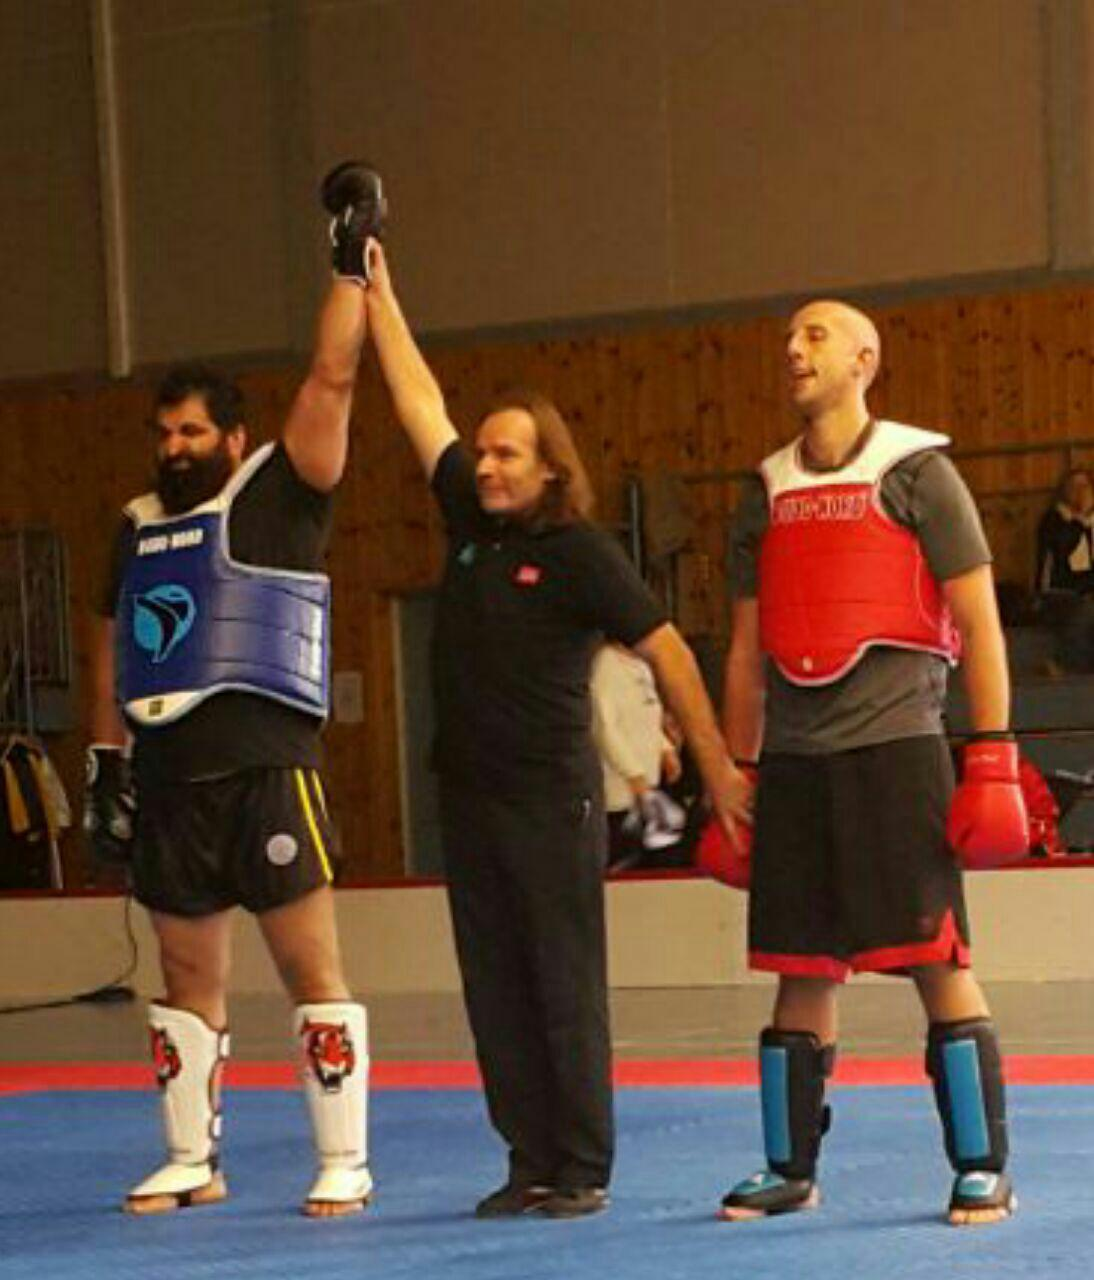 Iranian wushu fighter bags gold in Norway